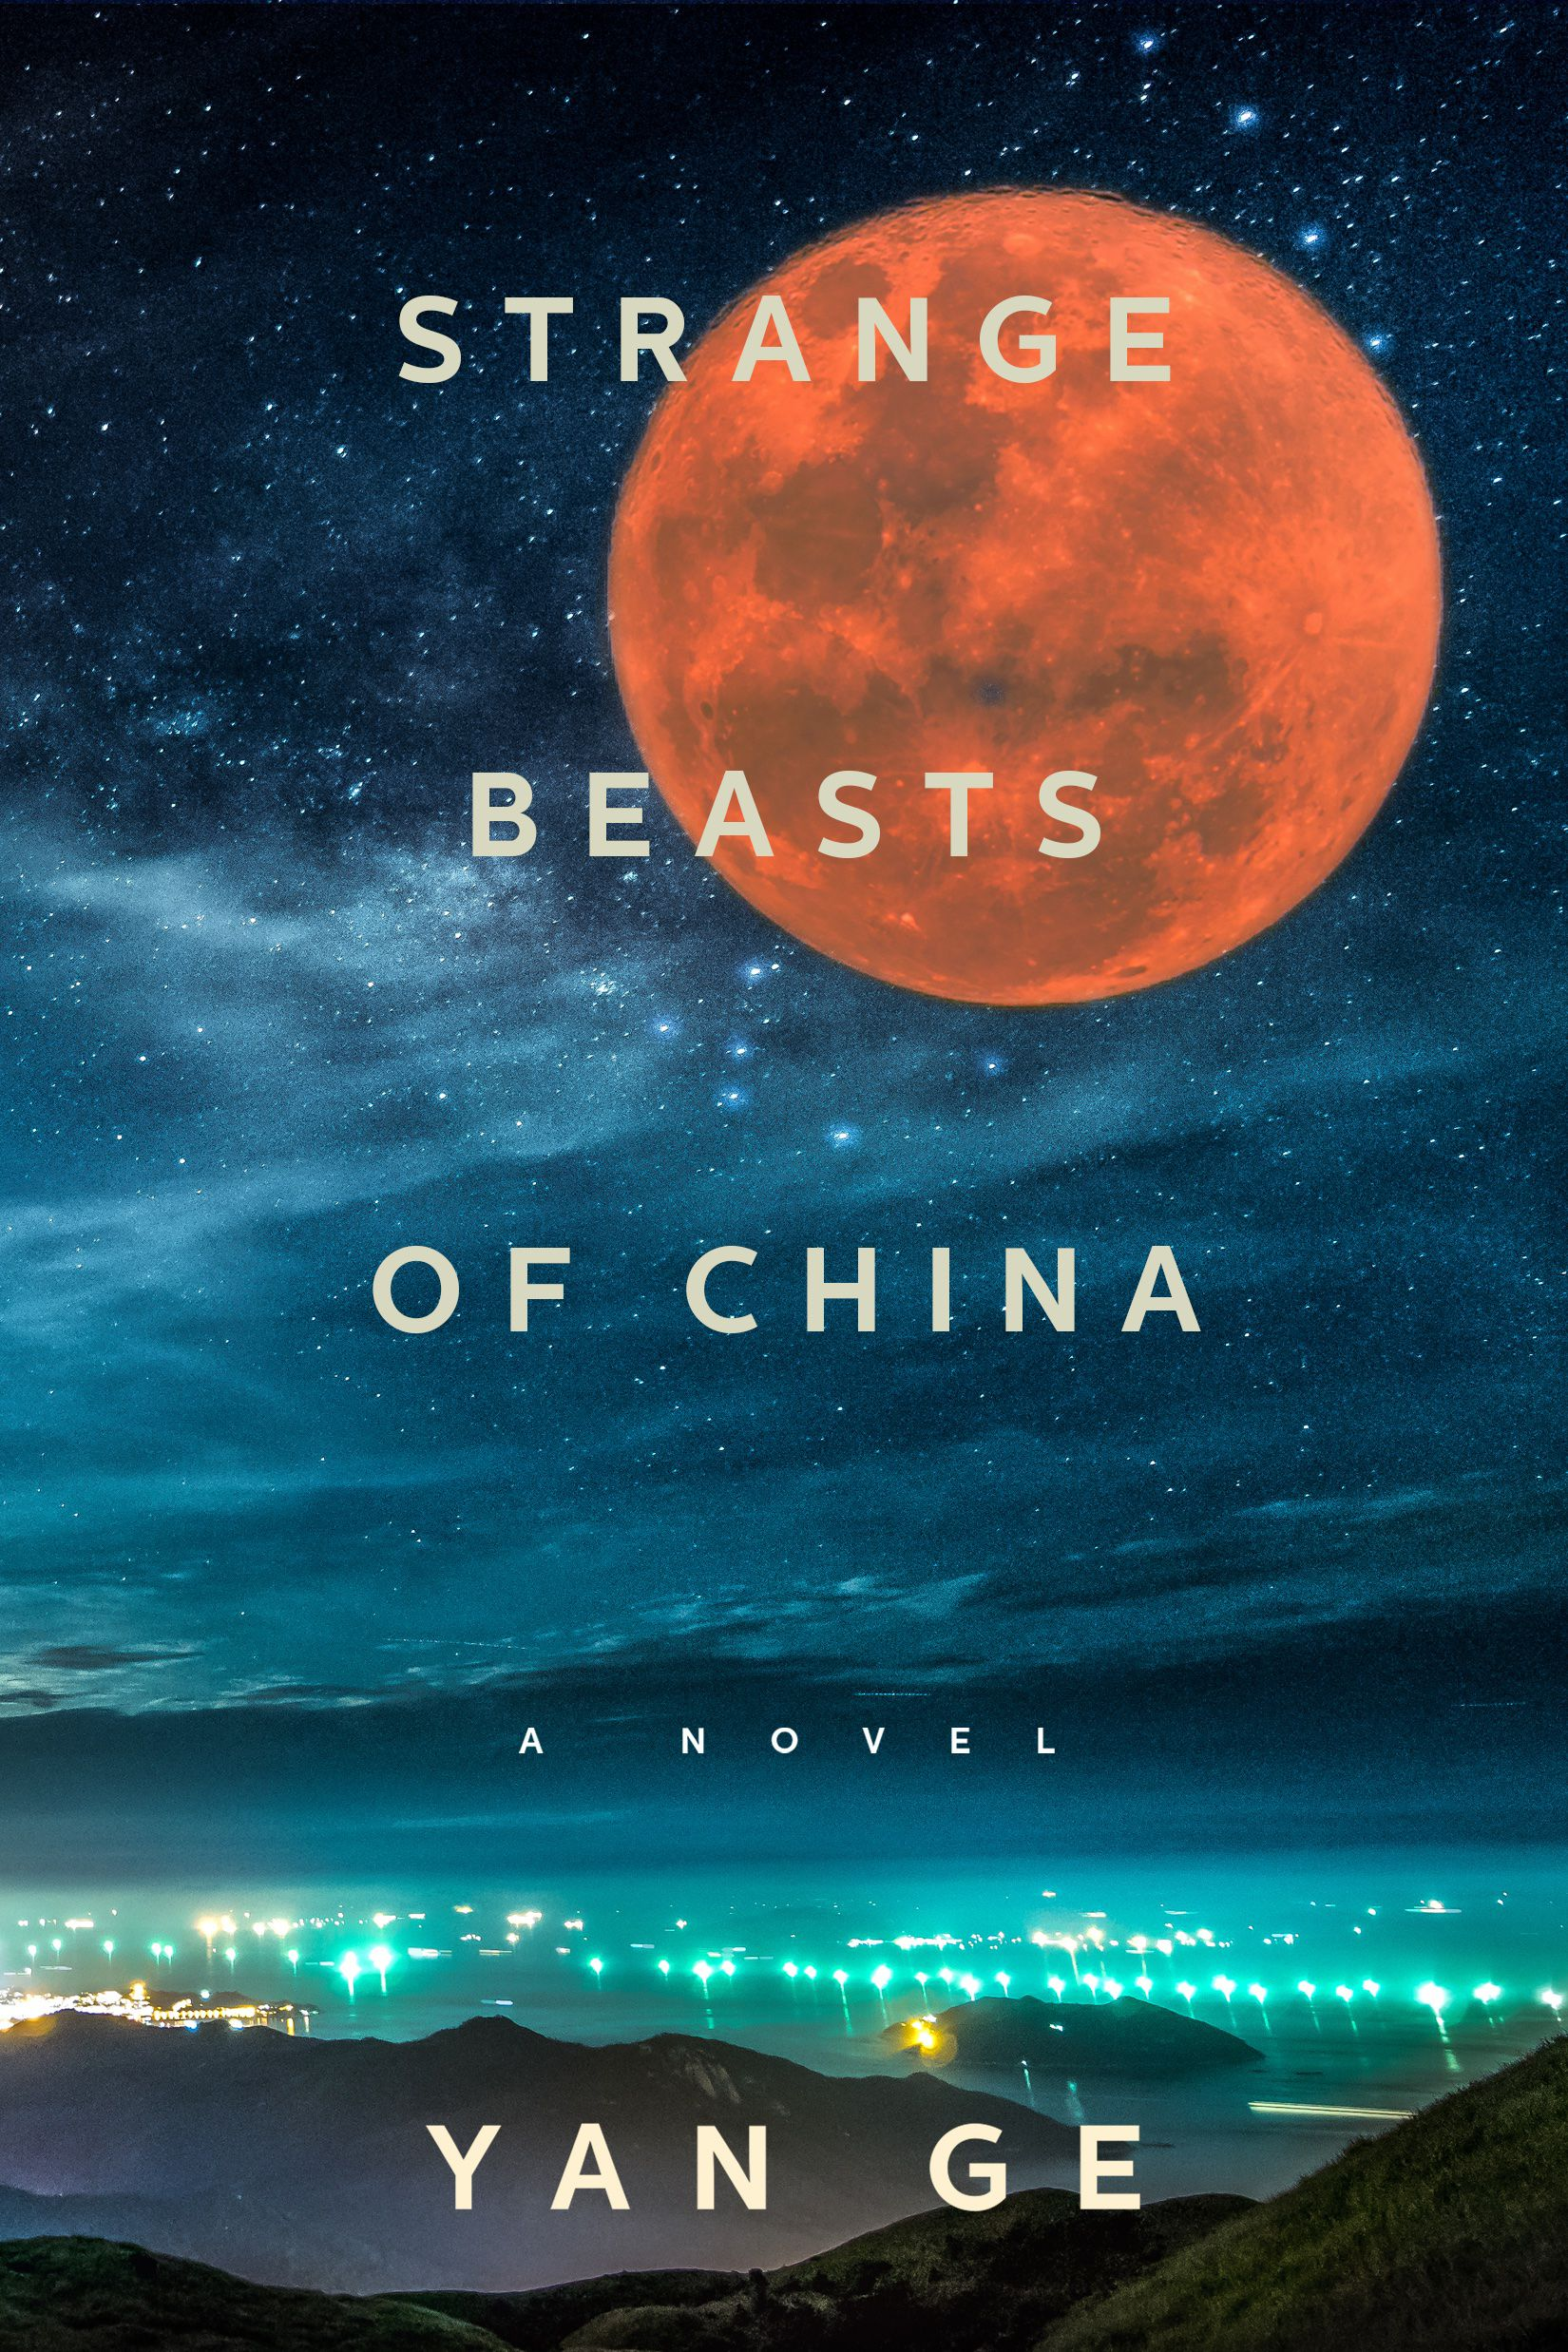 Strange Beasts of China by Yan Ge, translated by Jeremy Tiang